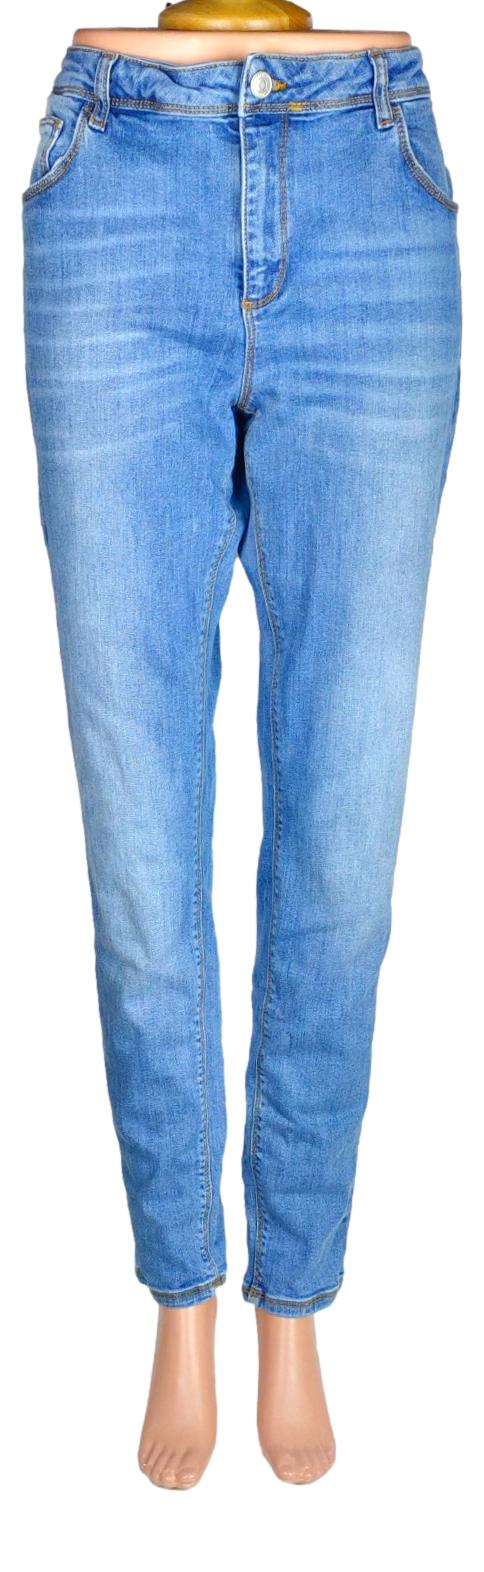 Jean United Colors Of Benetton - Taille 44